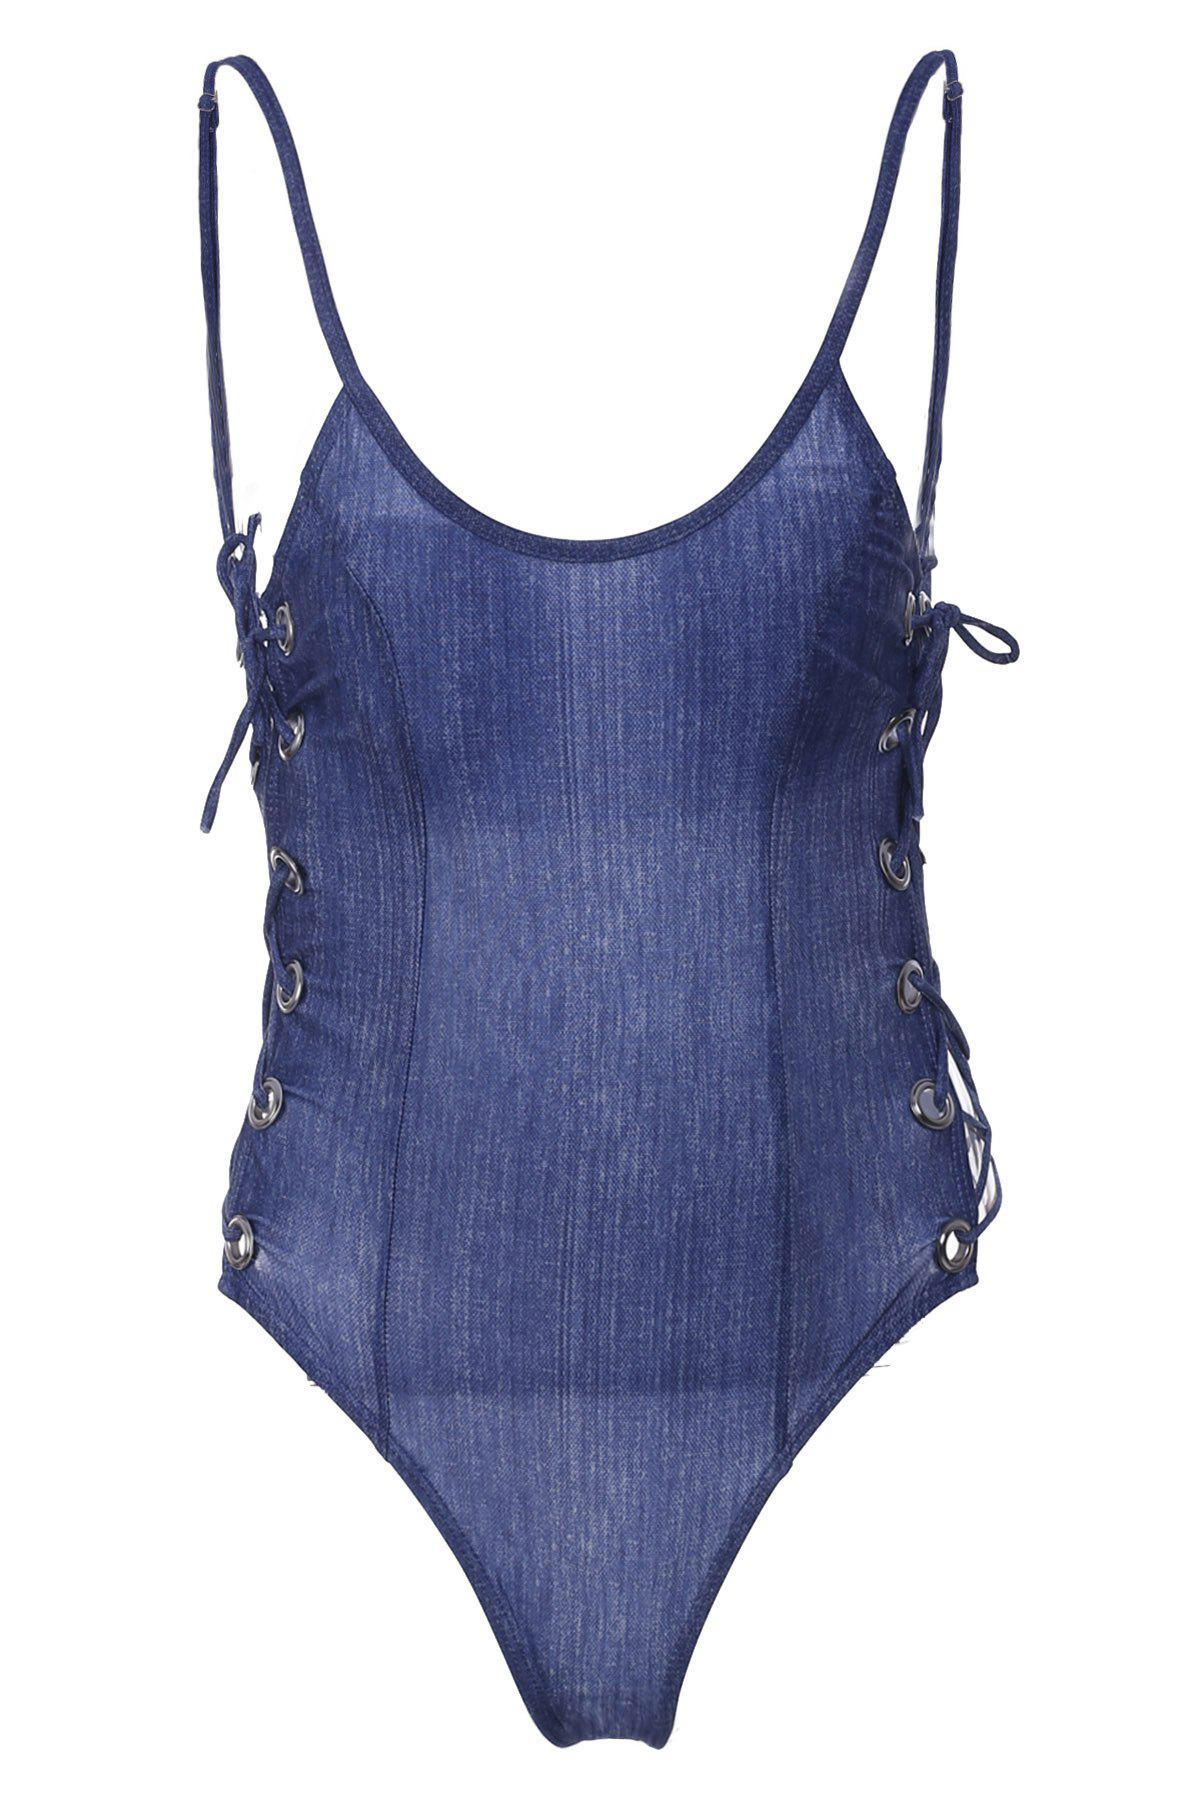 Sexy Women's Strappy Backless Solid Color One-Piece Swimwear - DEEP BLUE S